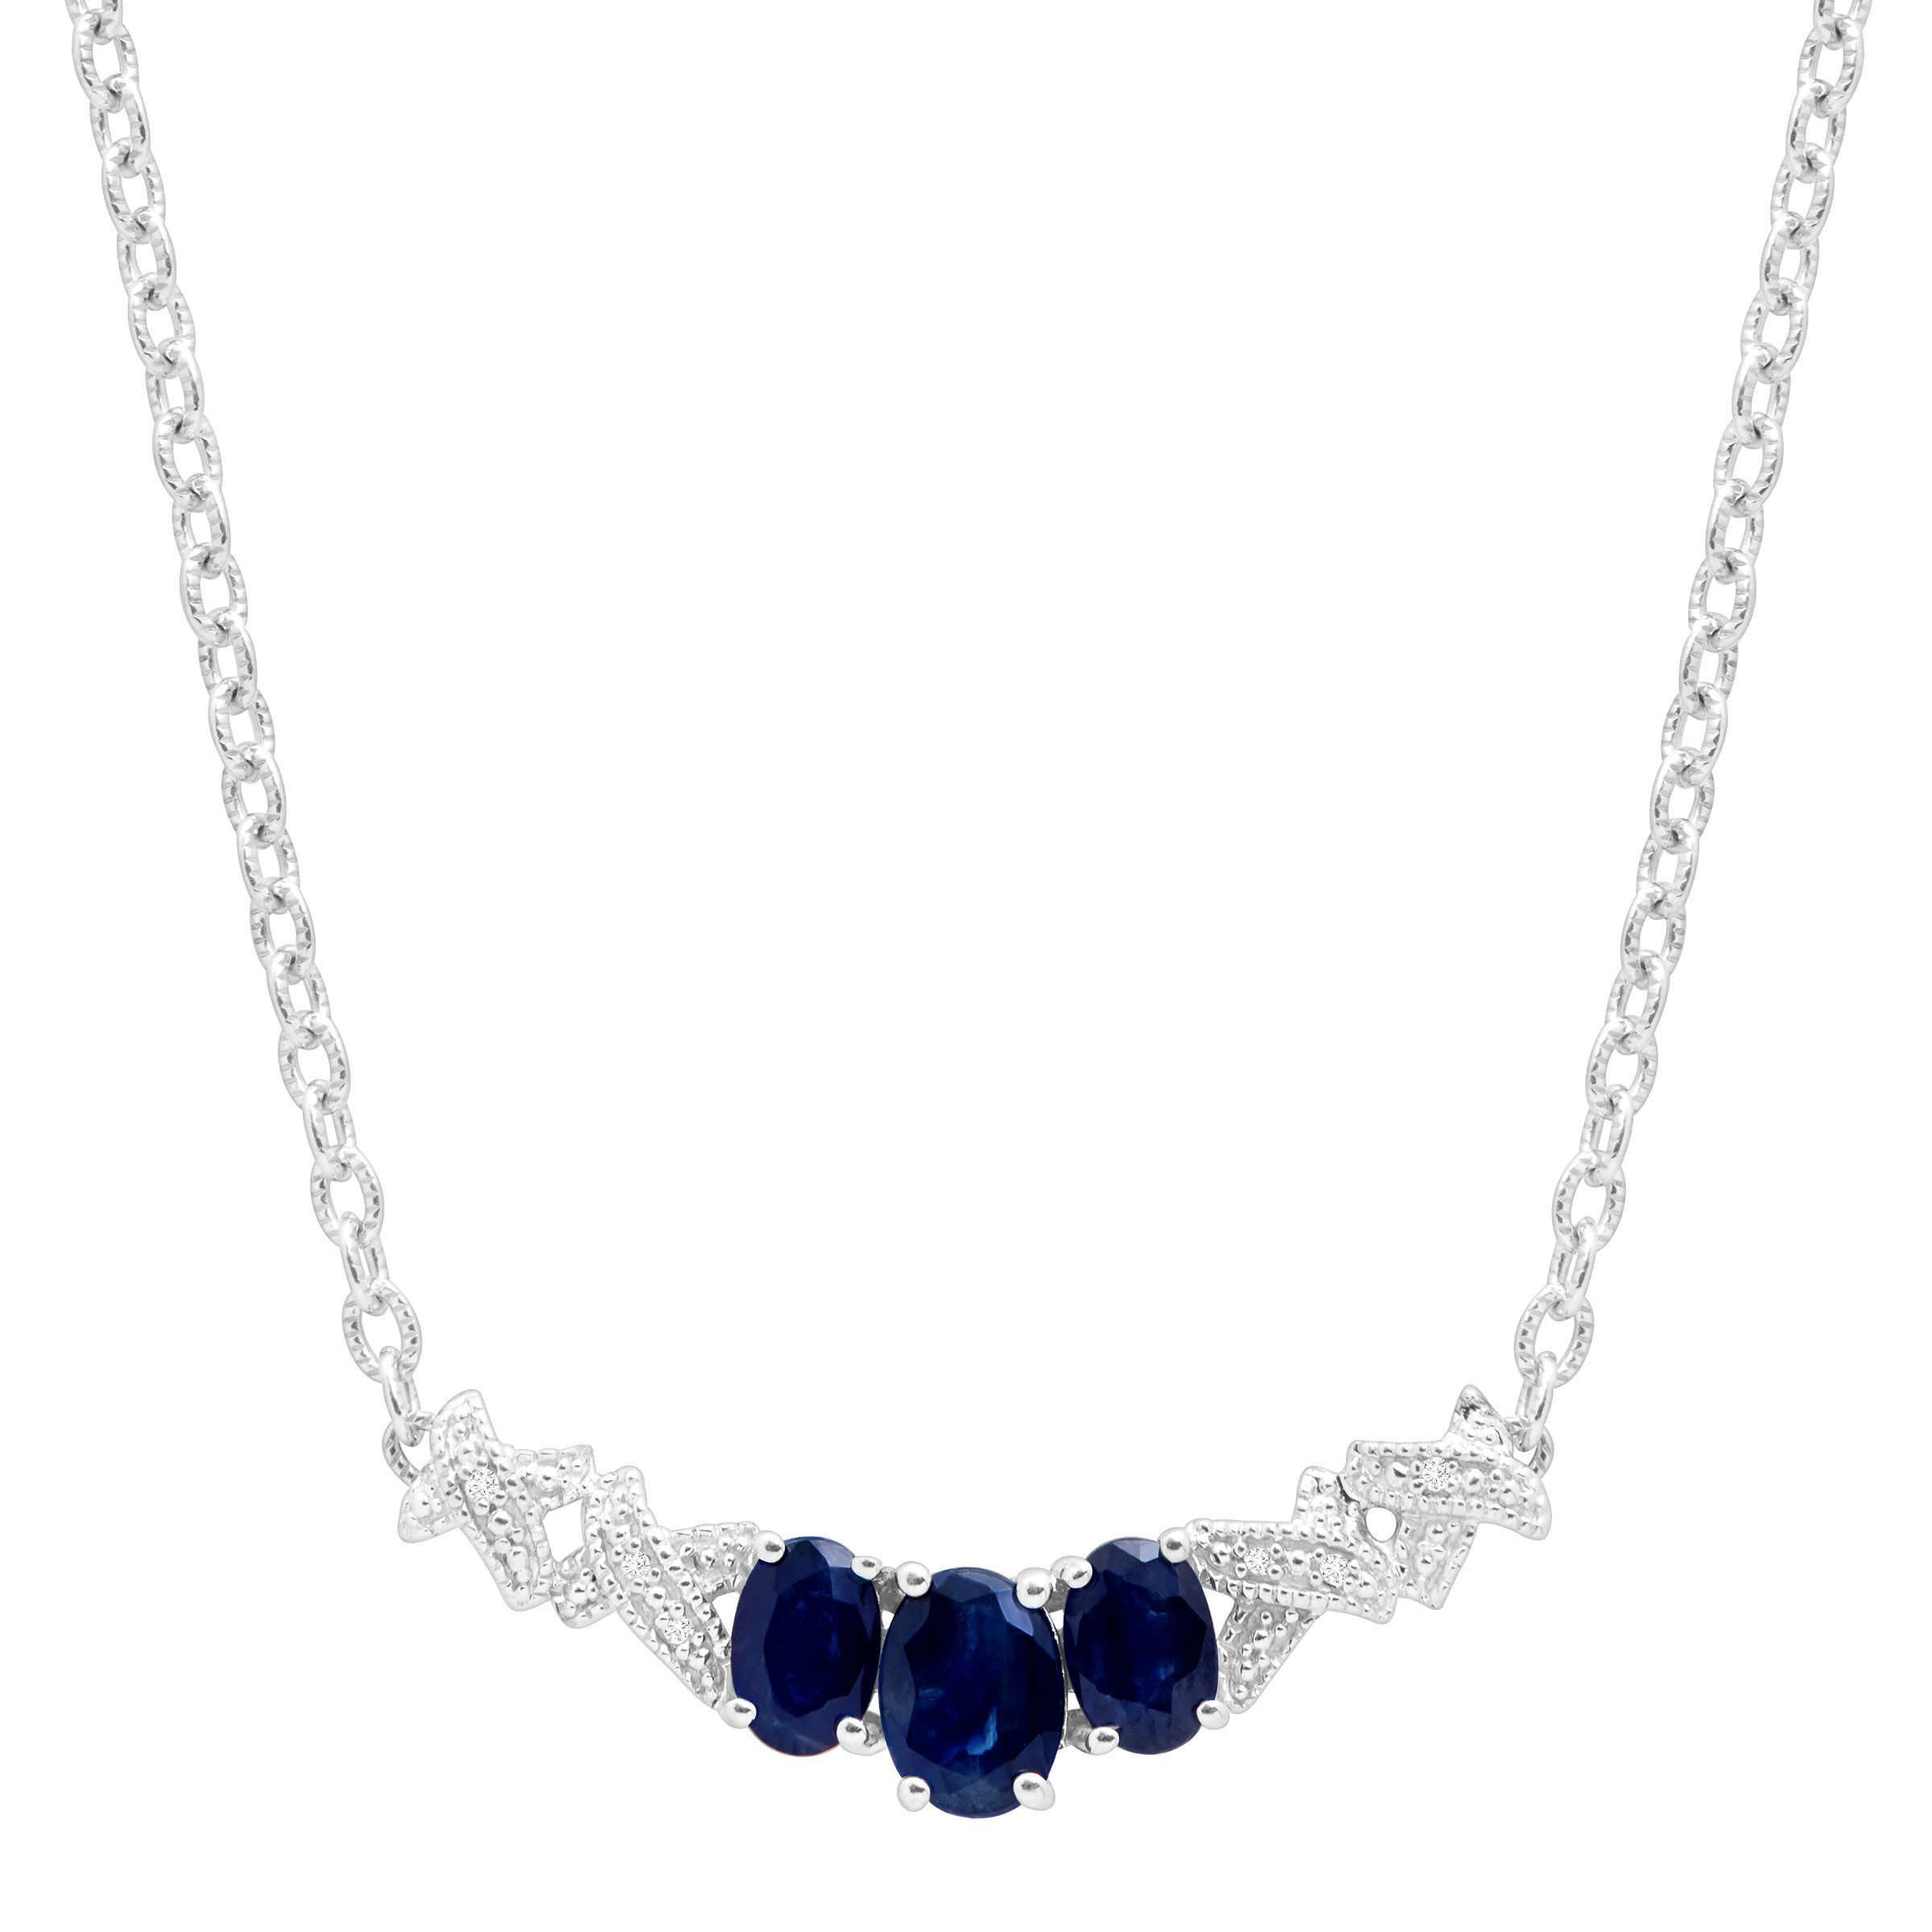 2 1 3 ct created sapphire garland necklace with diamonds. Black Bedroom Furniture Sets. Home Design Ideas